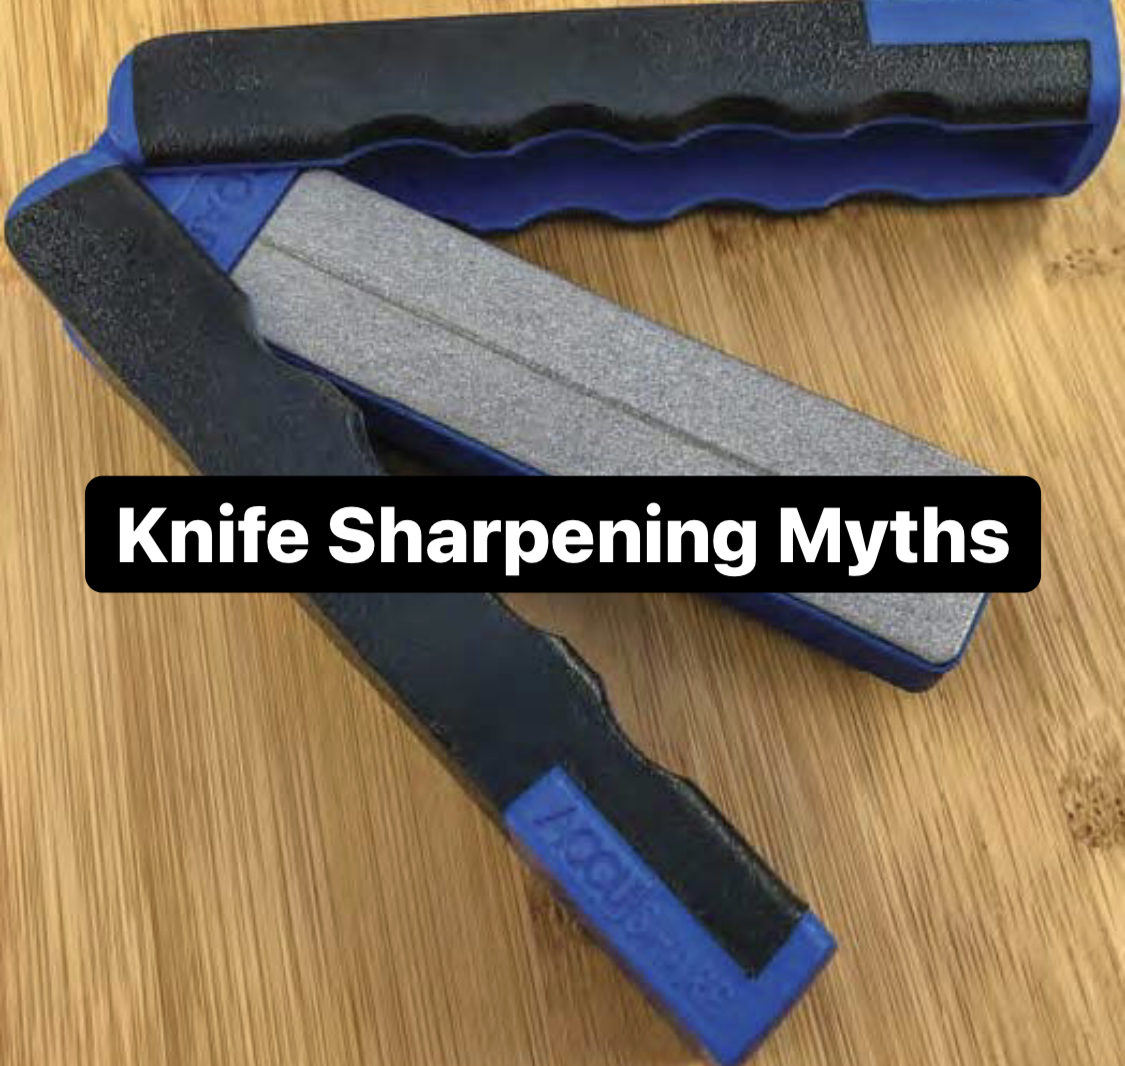 5 MYTHS ABOUT KNIFE SHARPENING